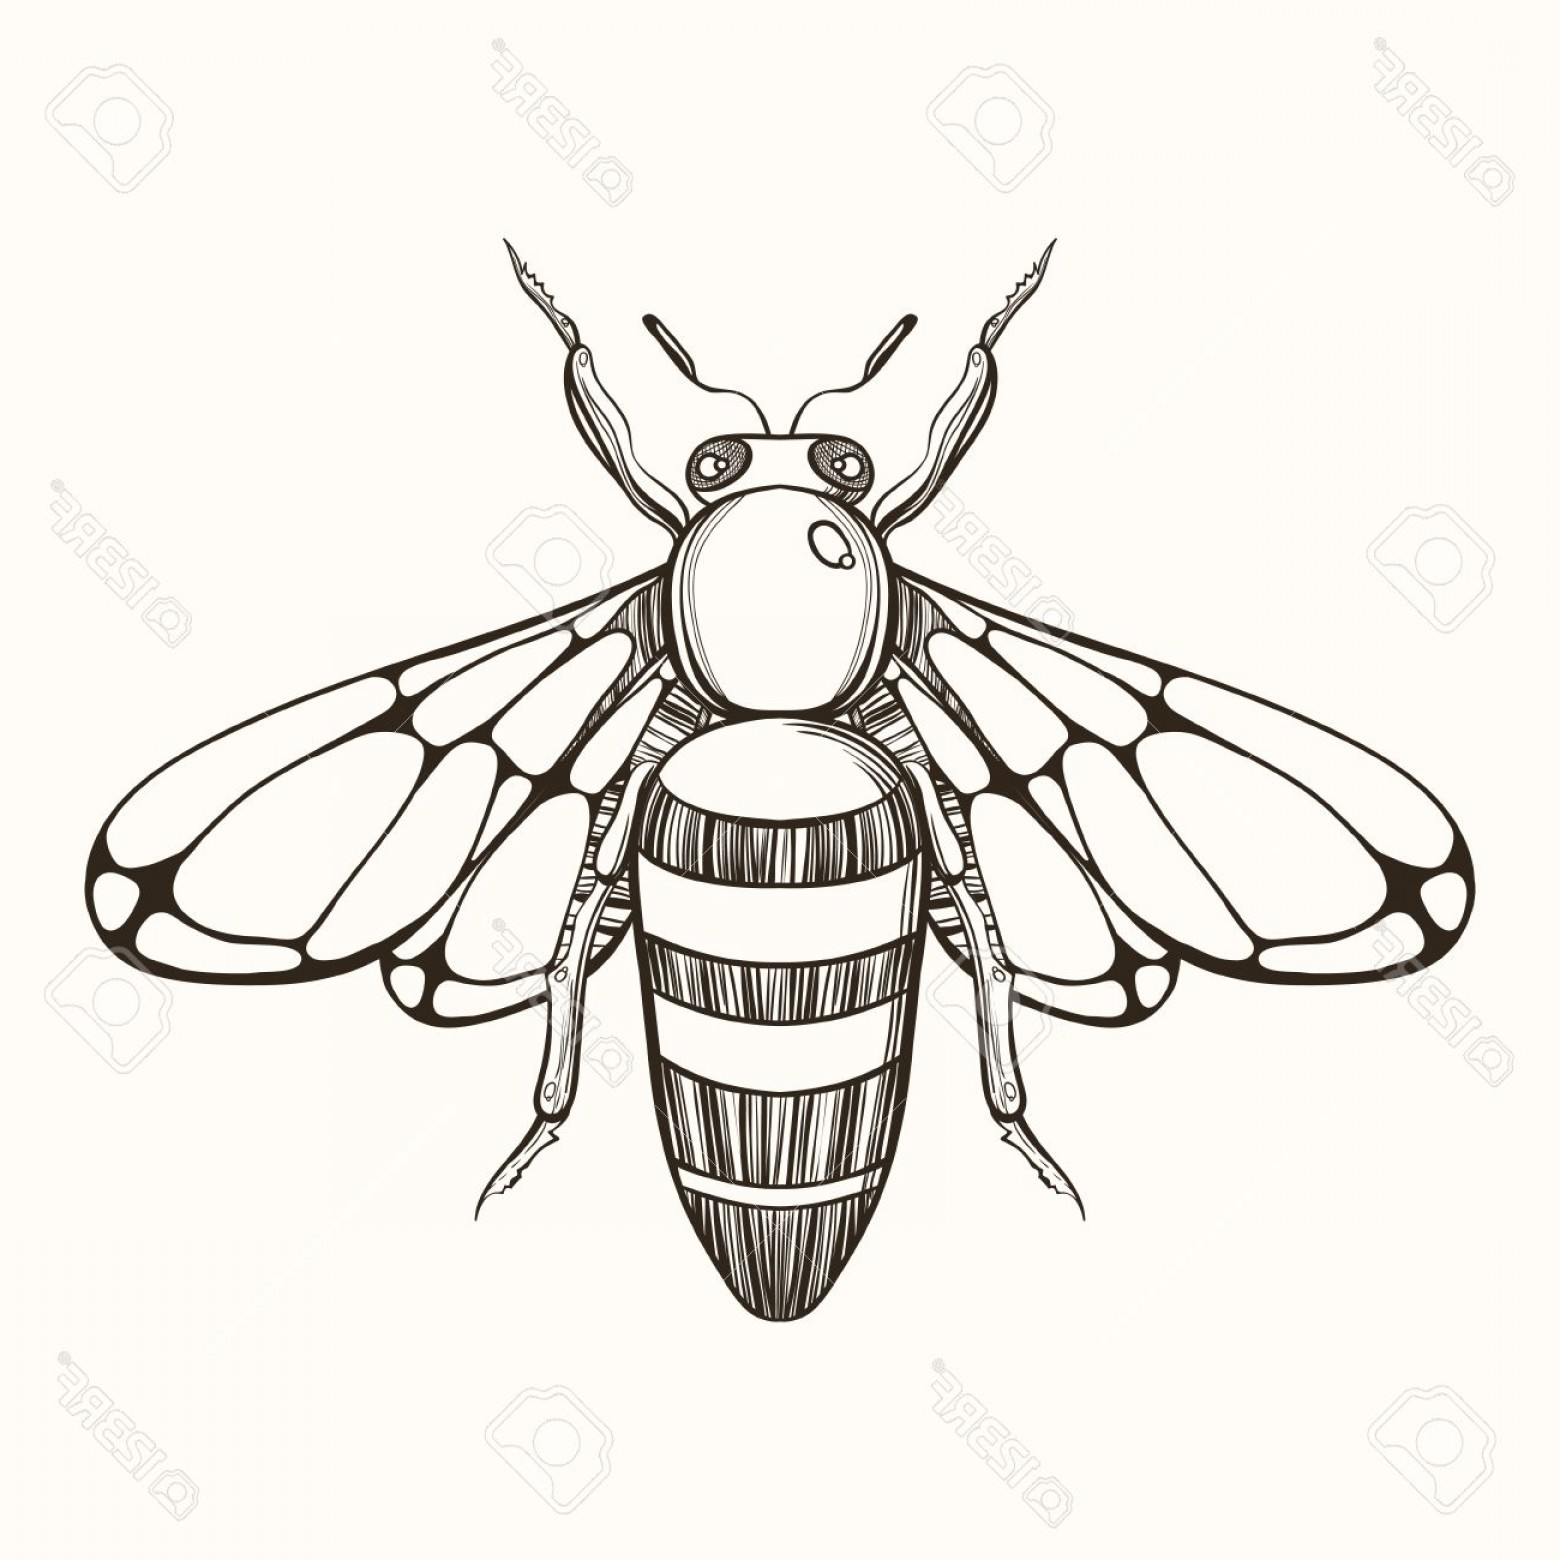 Bee Drawing Vector: Photostock Vector Hand Drawn Engraving Sketch Of Bee Vector Illustration For Tattoo And Handmade Decorative Brooch